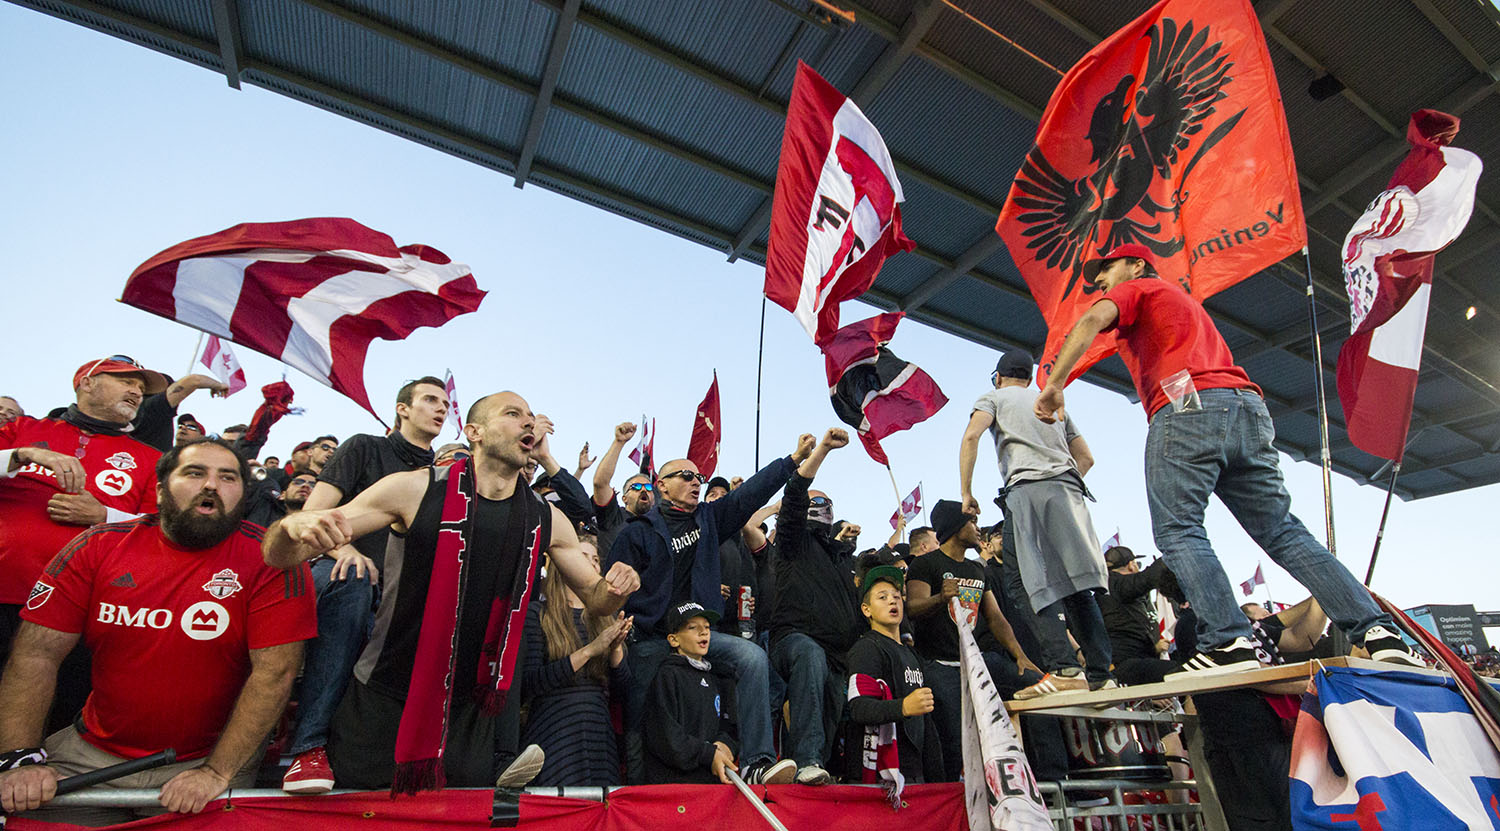 Supporter's from the south end making the atmosphere at BMO absolutely lit in 2017 during the Canadian Championship finale.Image by Dennis Marciniak of denMAR Media.